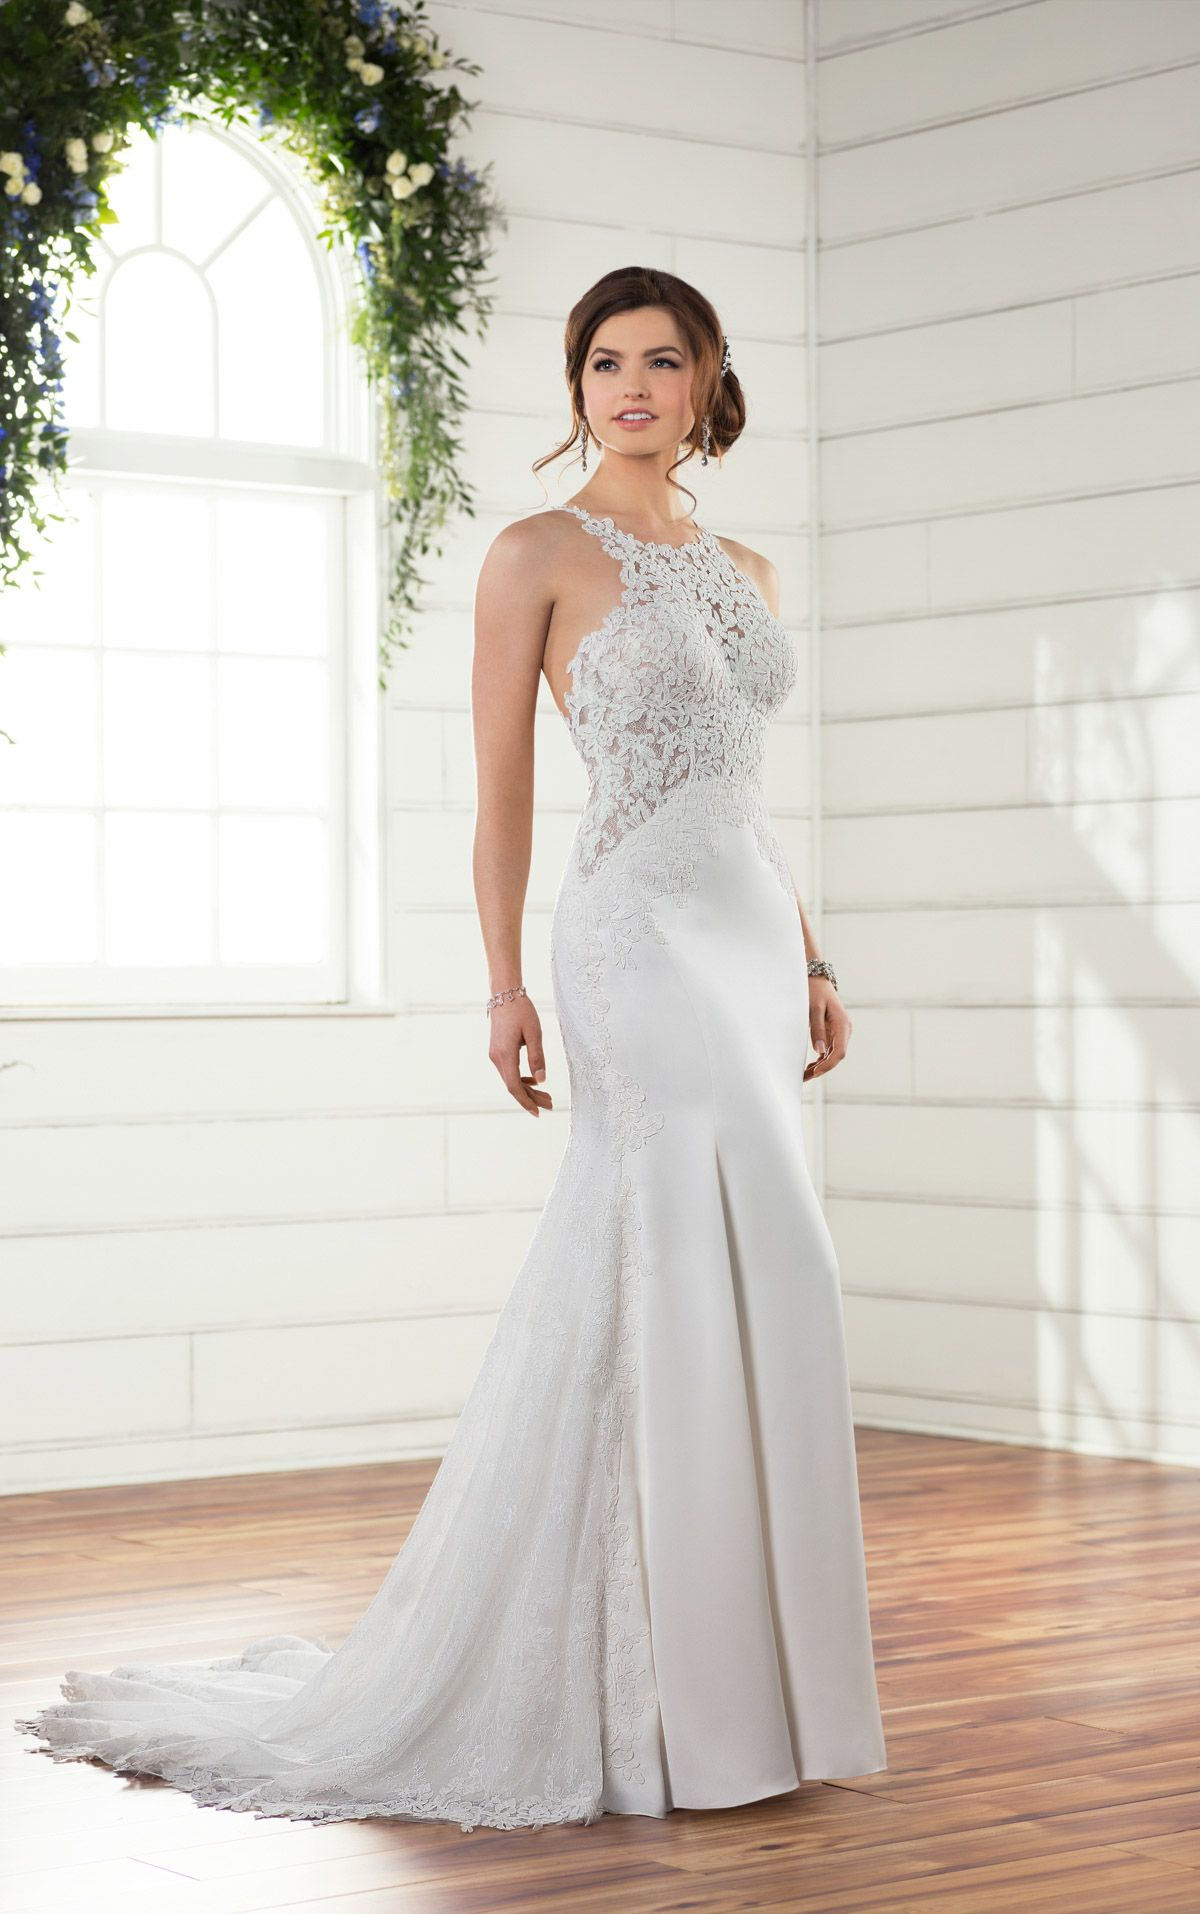 Essense of Australia bridal gown at The Bridal Cottage! #lace #train ...